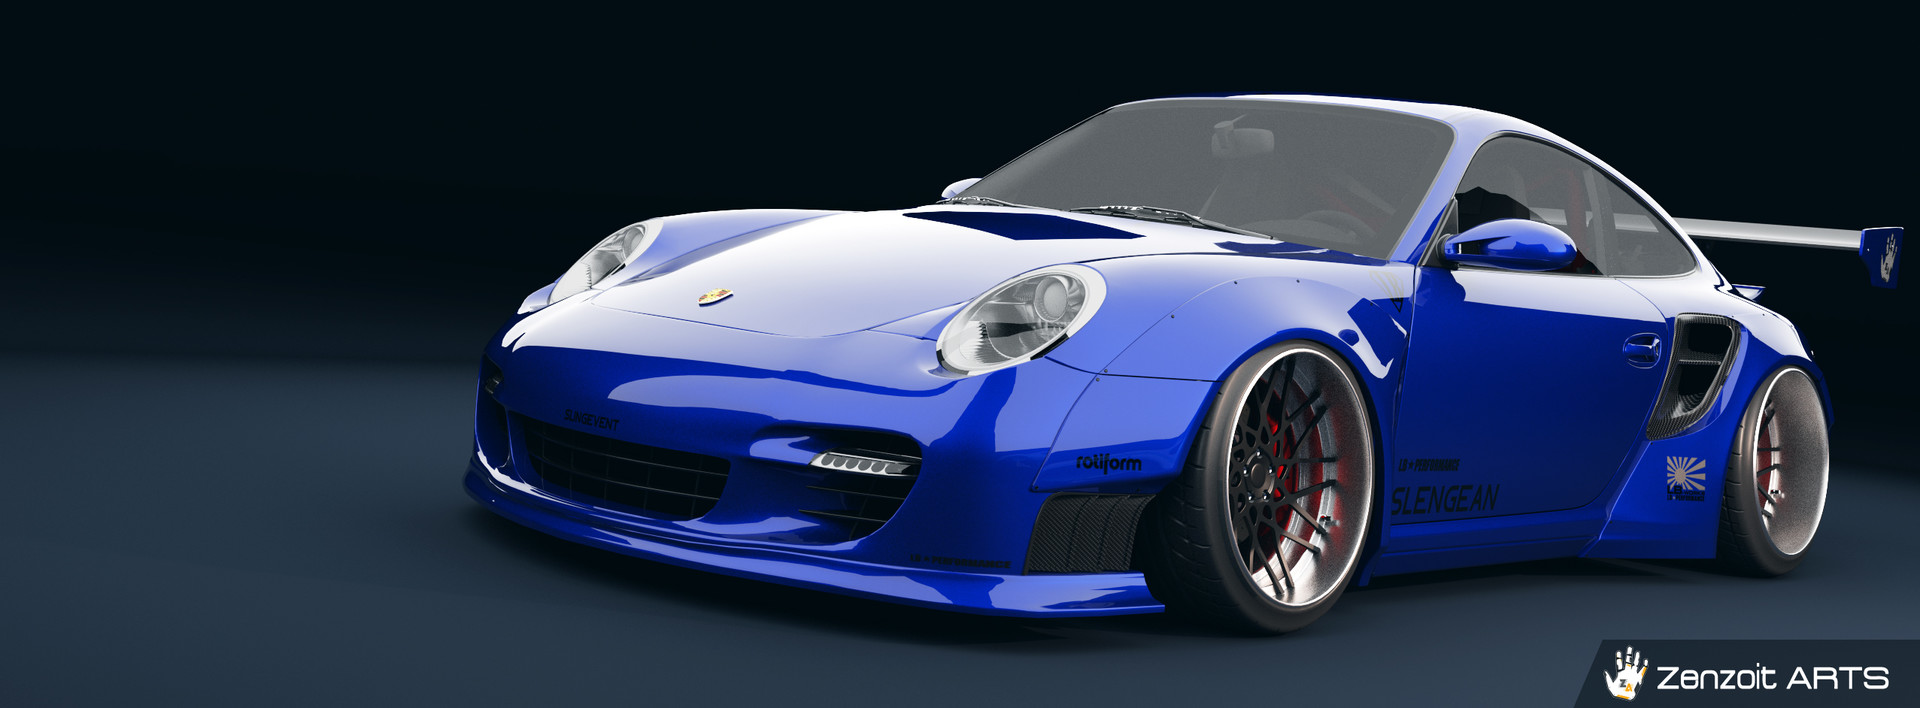 Zenzoit Arts 3d 2007 Porsche 911 Tubro Liberty Walk Kit